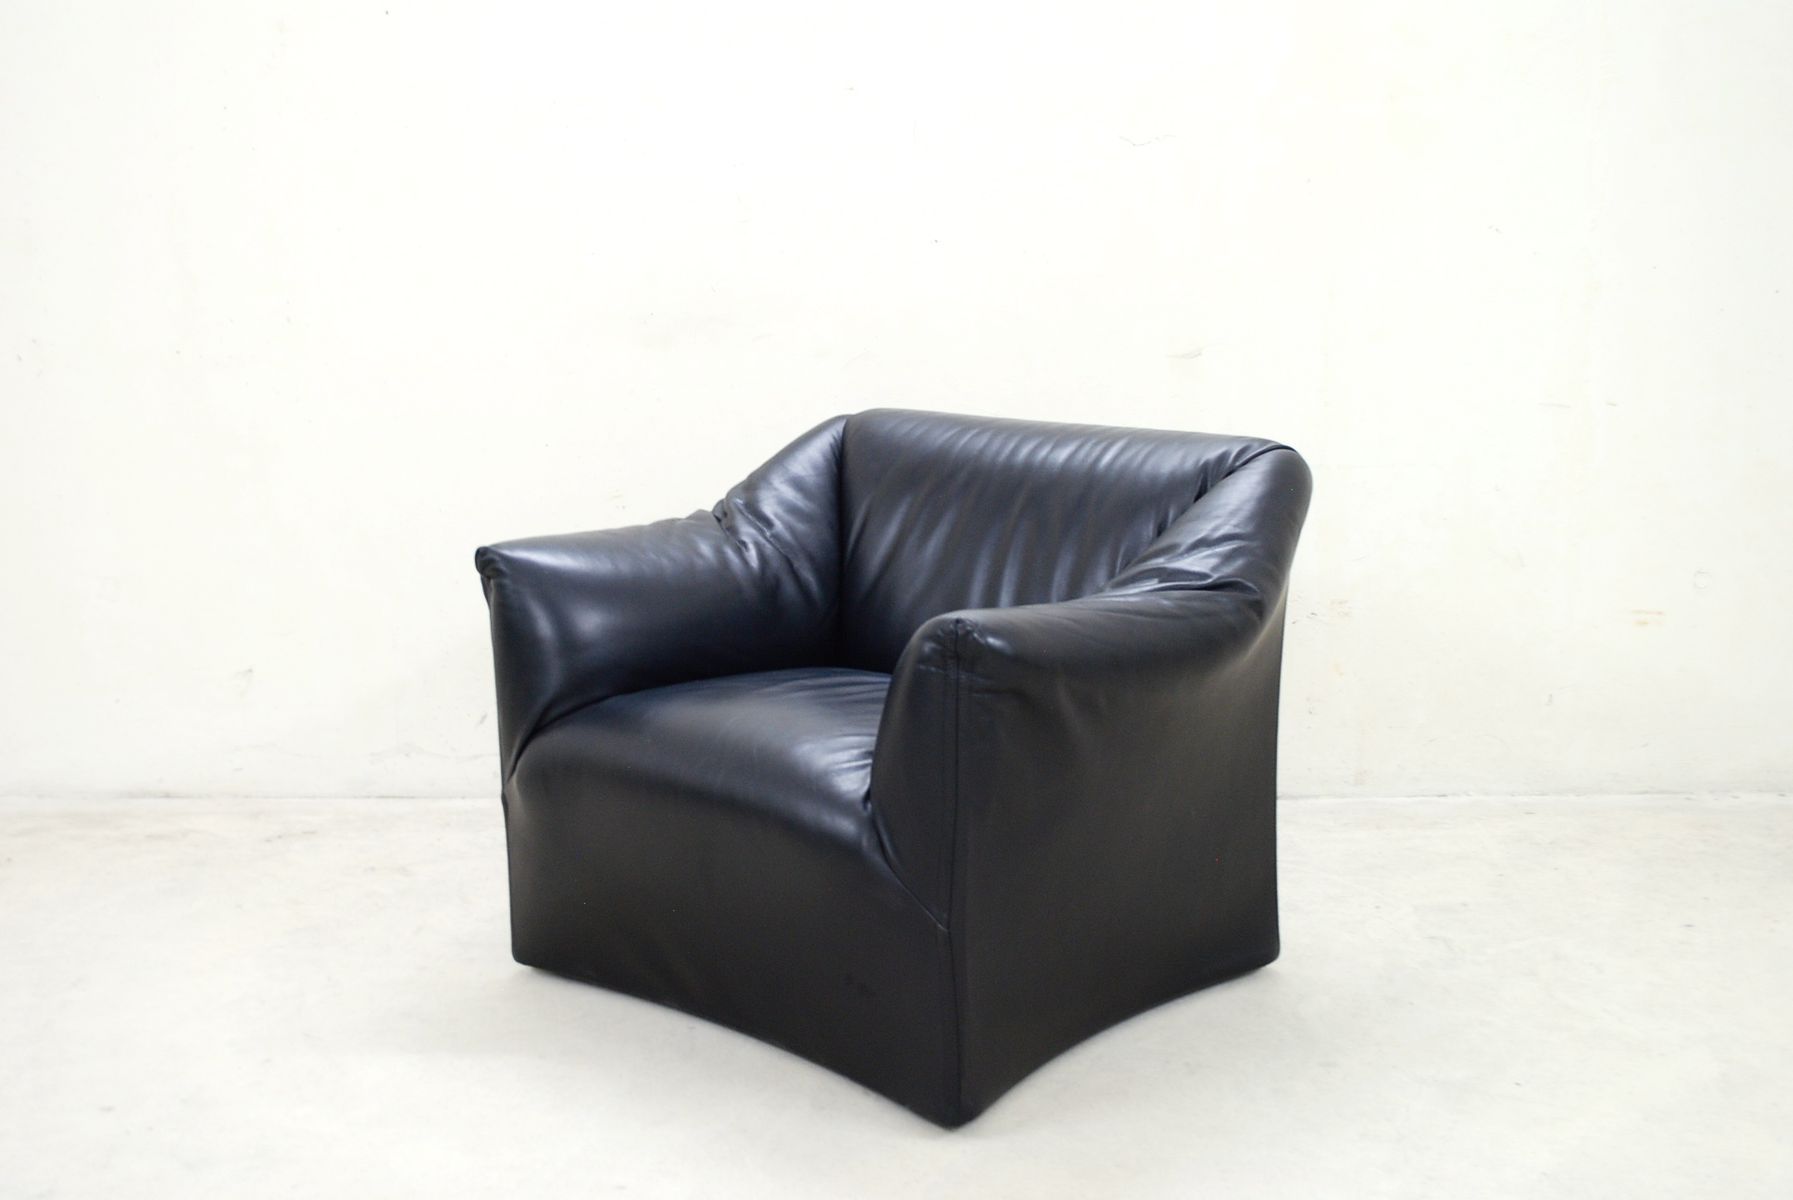 Tentazione Leather Armchair by Mario Bellini for Cassina 1973 for